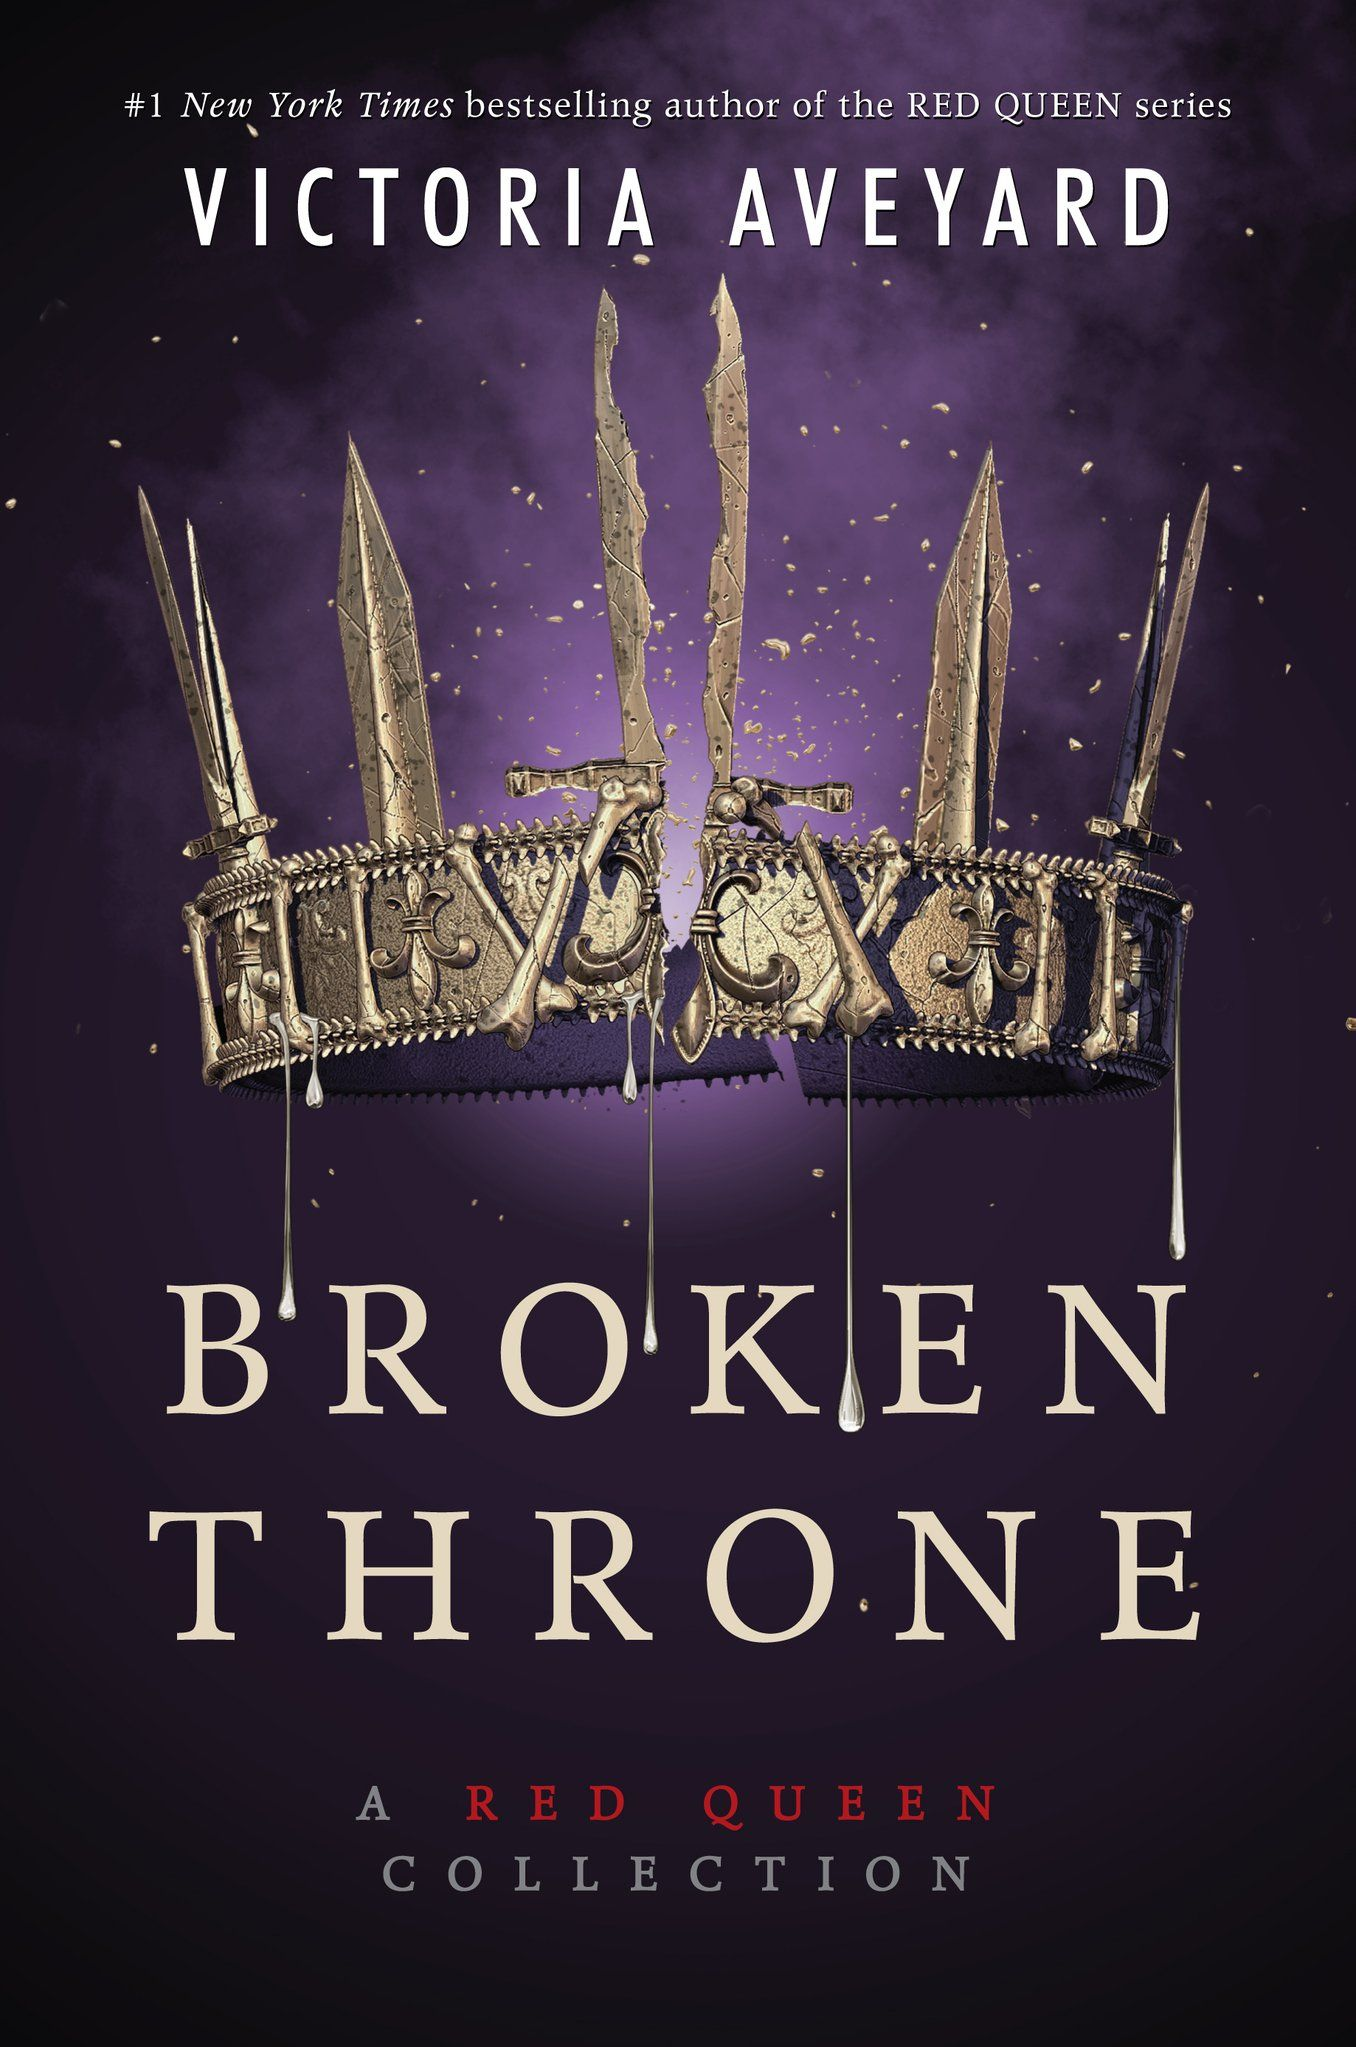 Broken Throne By Victoria Aveyard With Images Red Queen Book